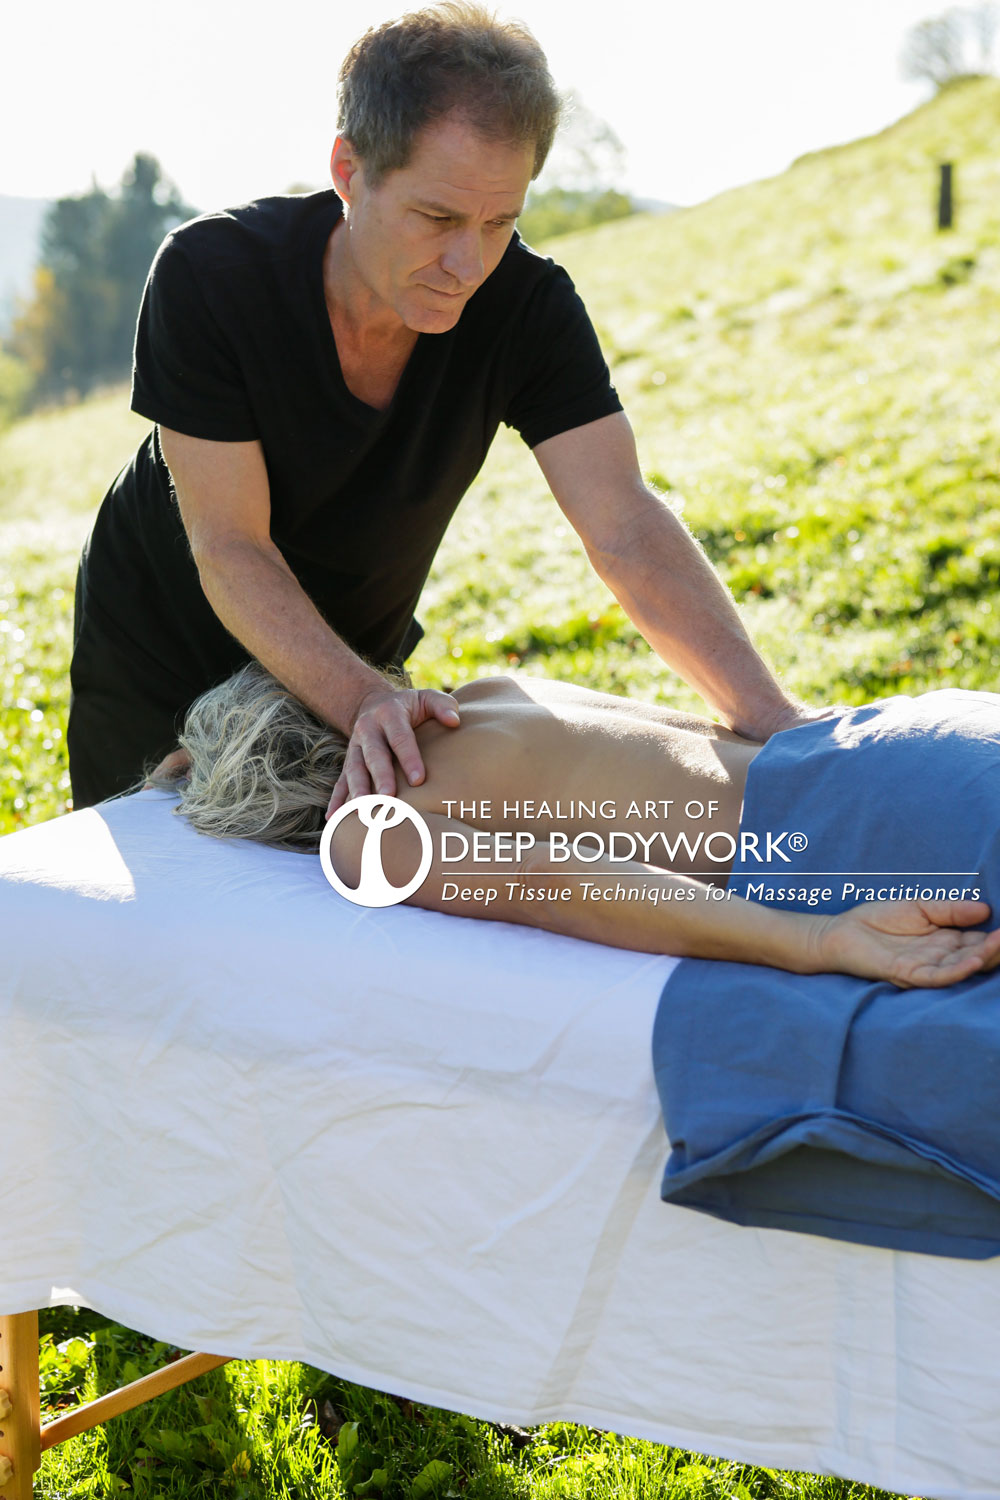 The Healing Art of Deep Bodywork: III